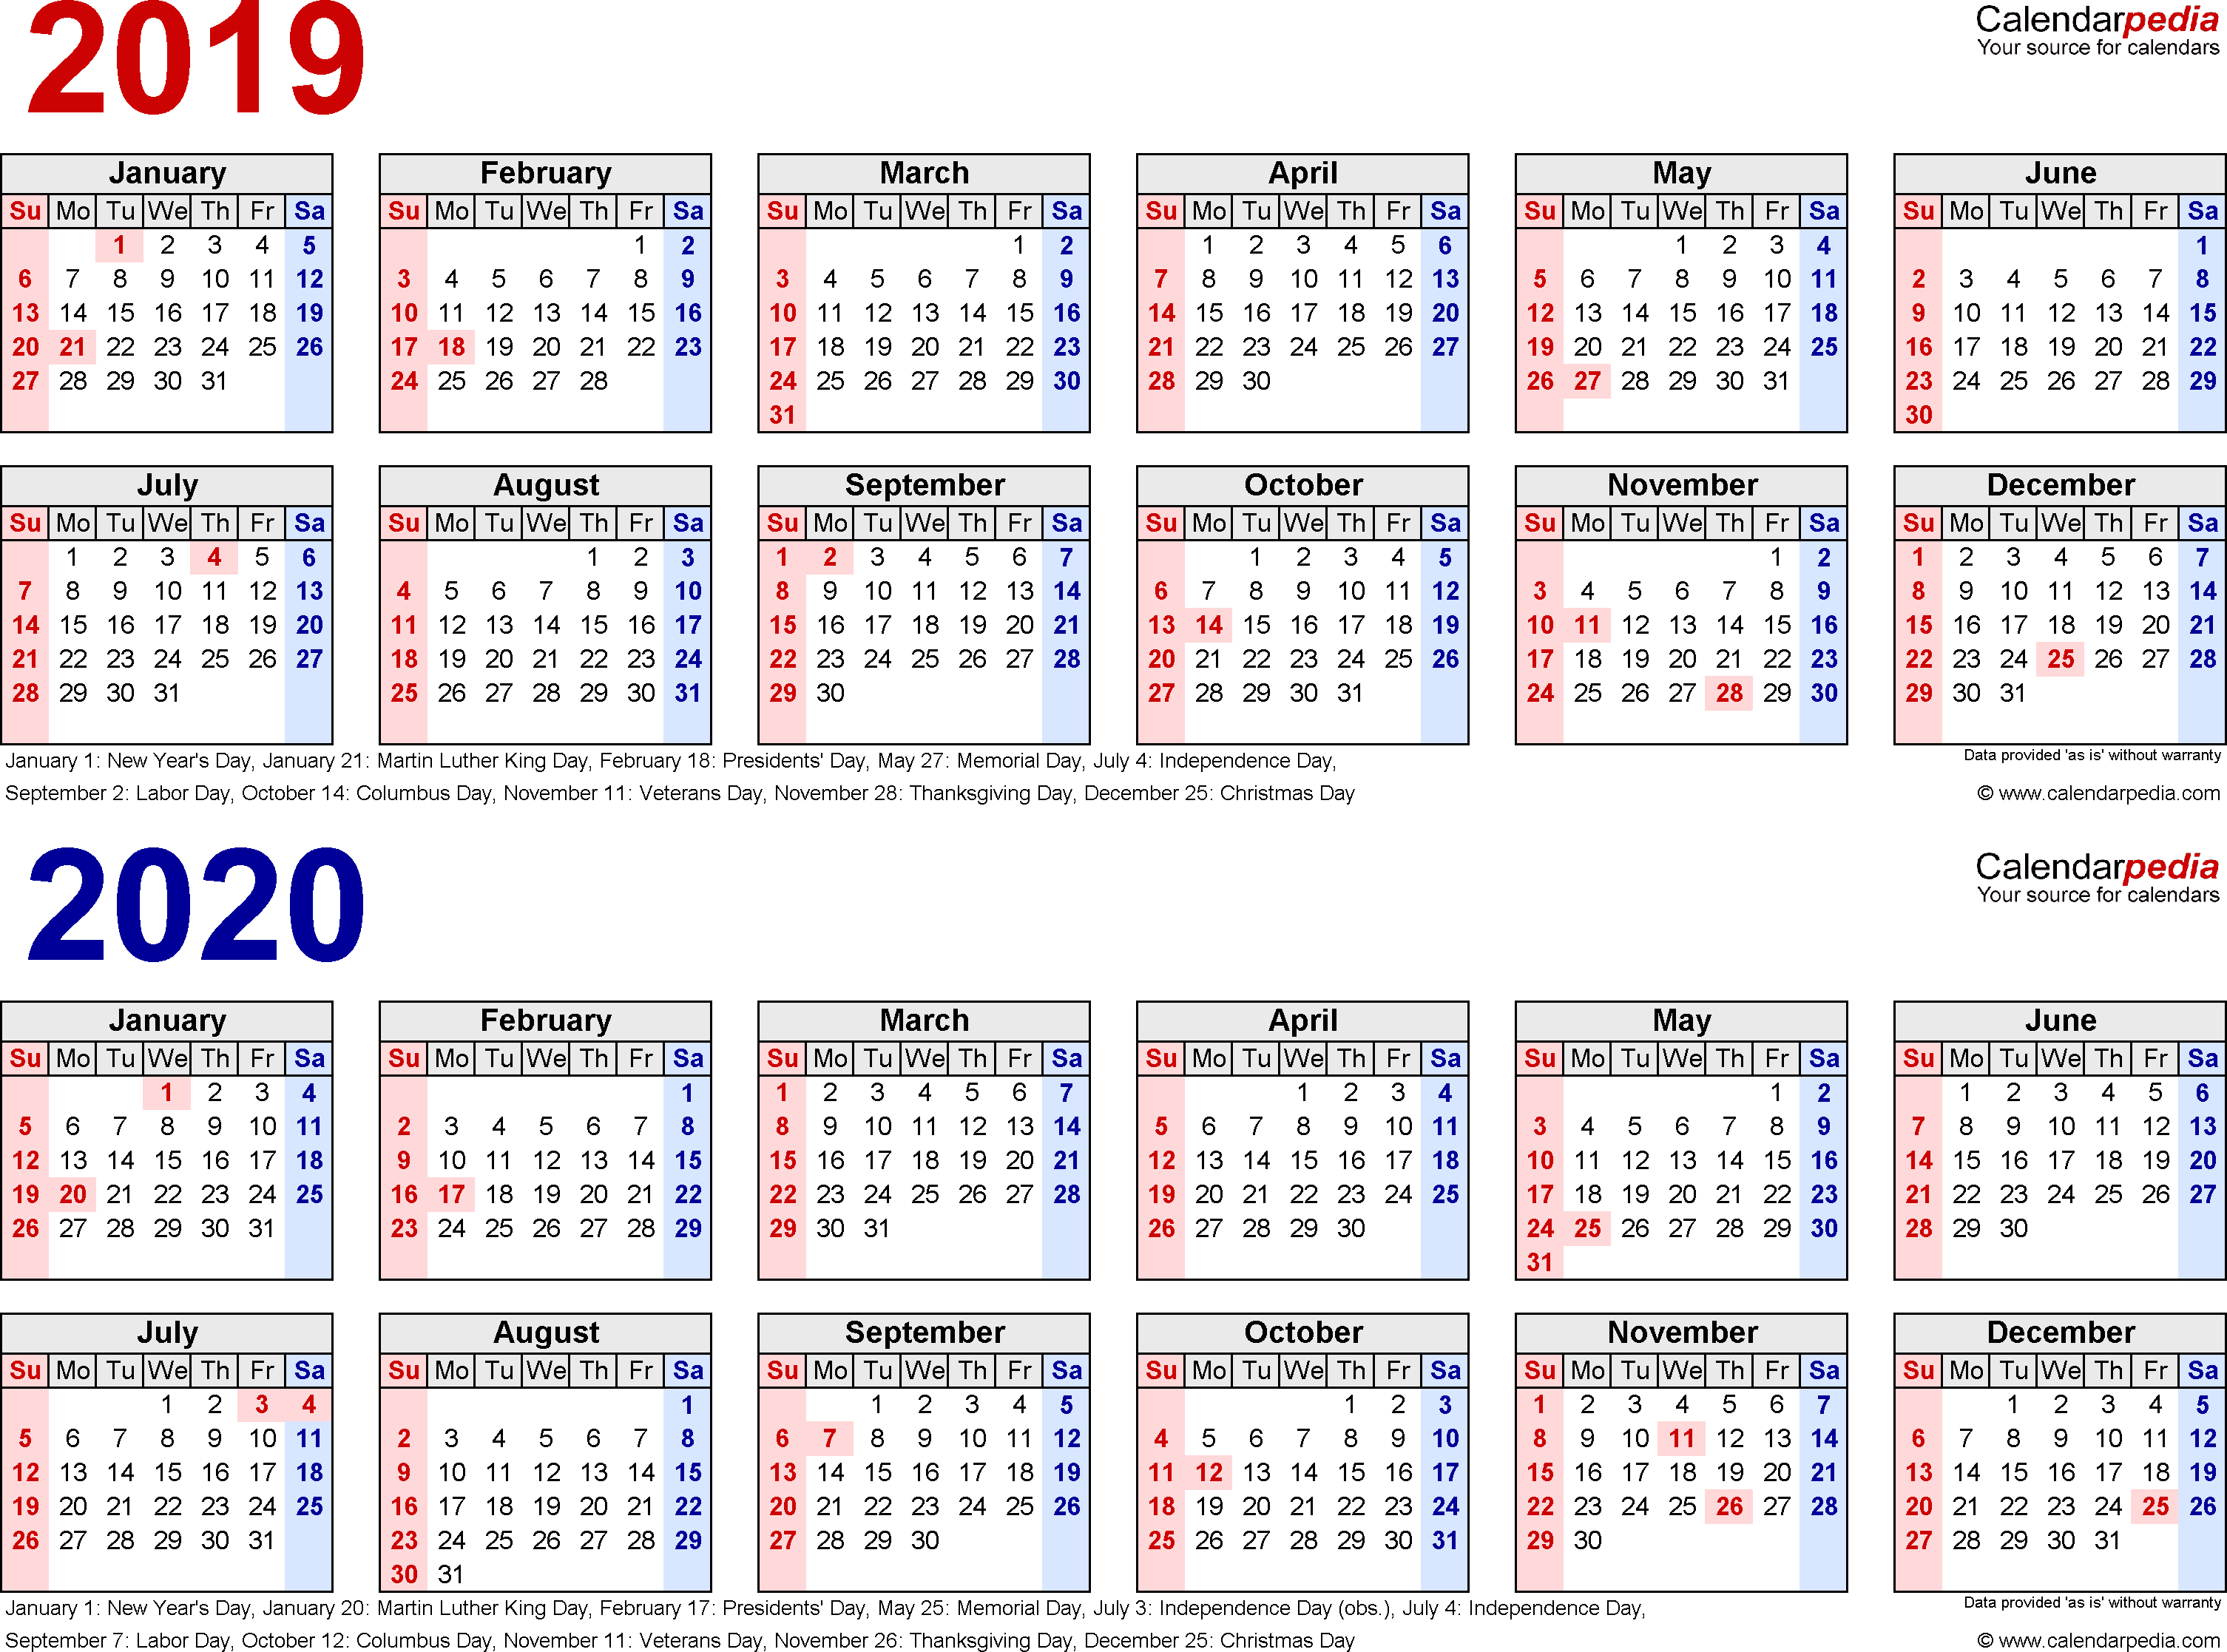 2019-2020 Calendar - Free Printable Two-Year Word Calendars intended for Calendar To Type On 2019 - 2020